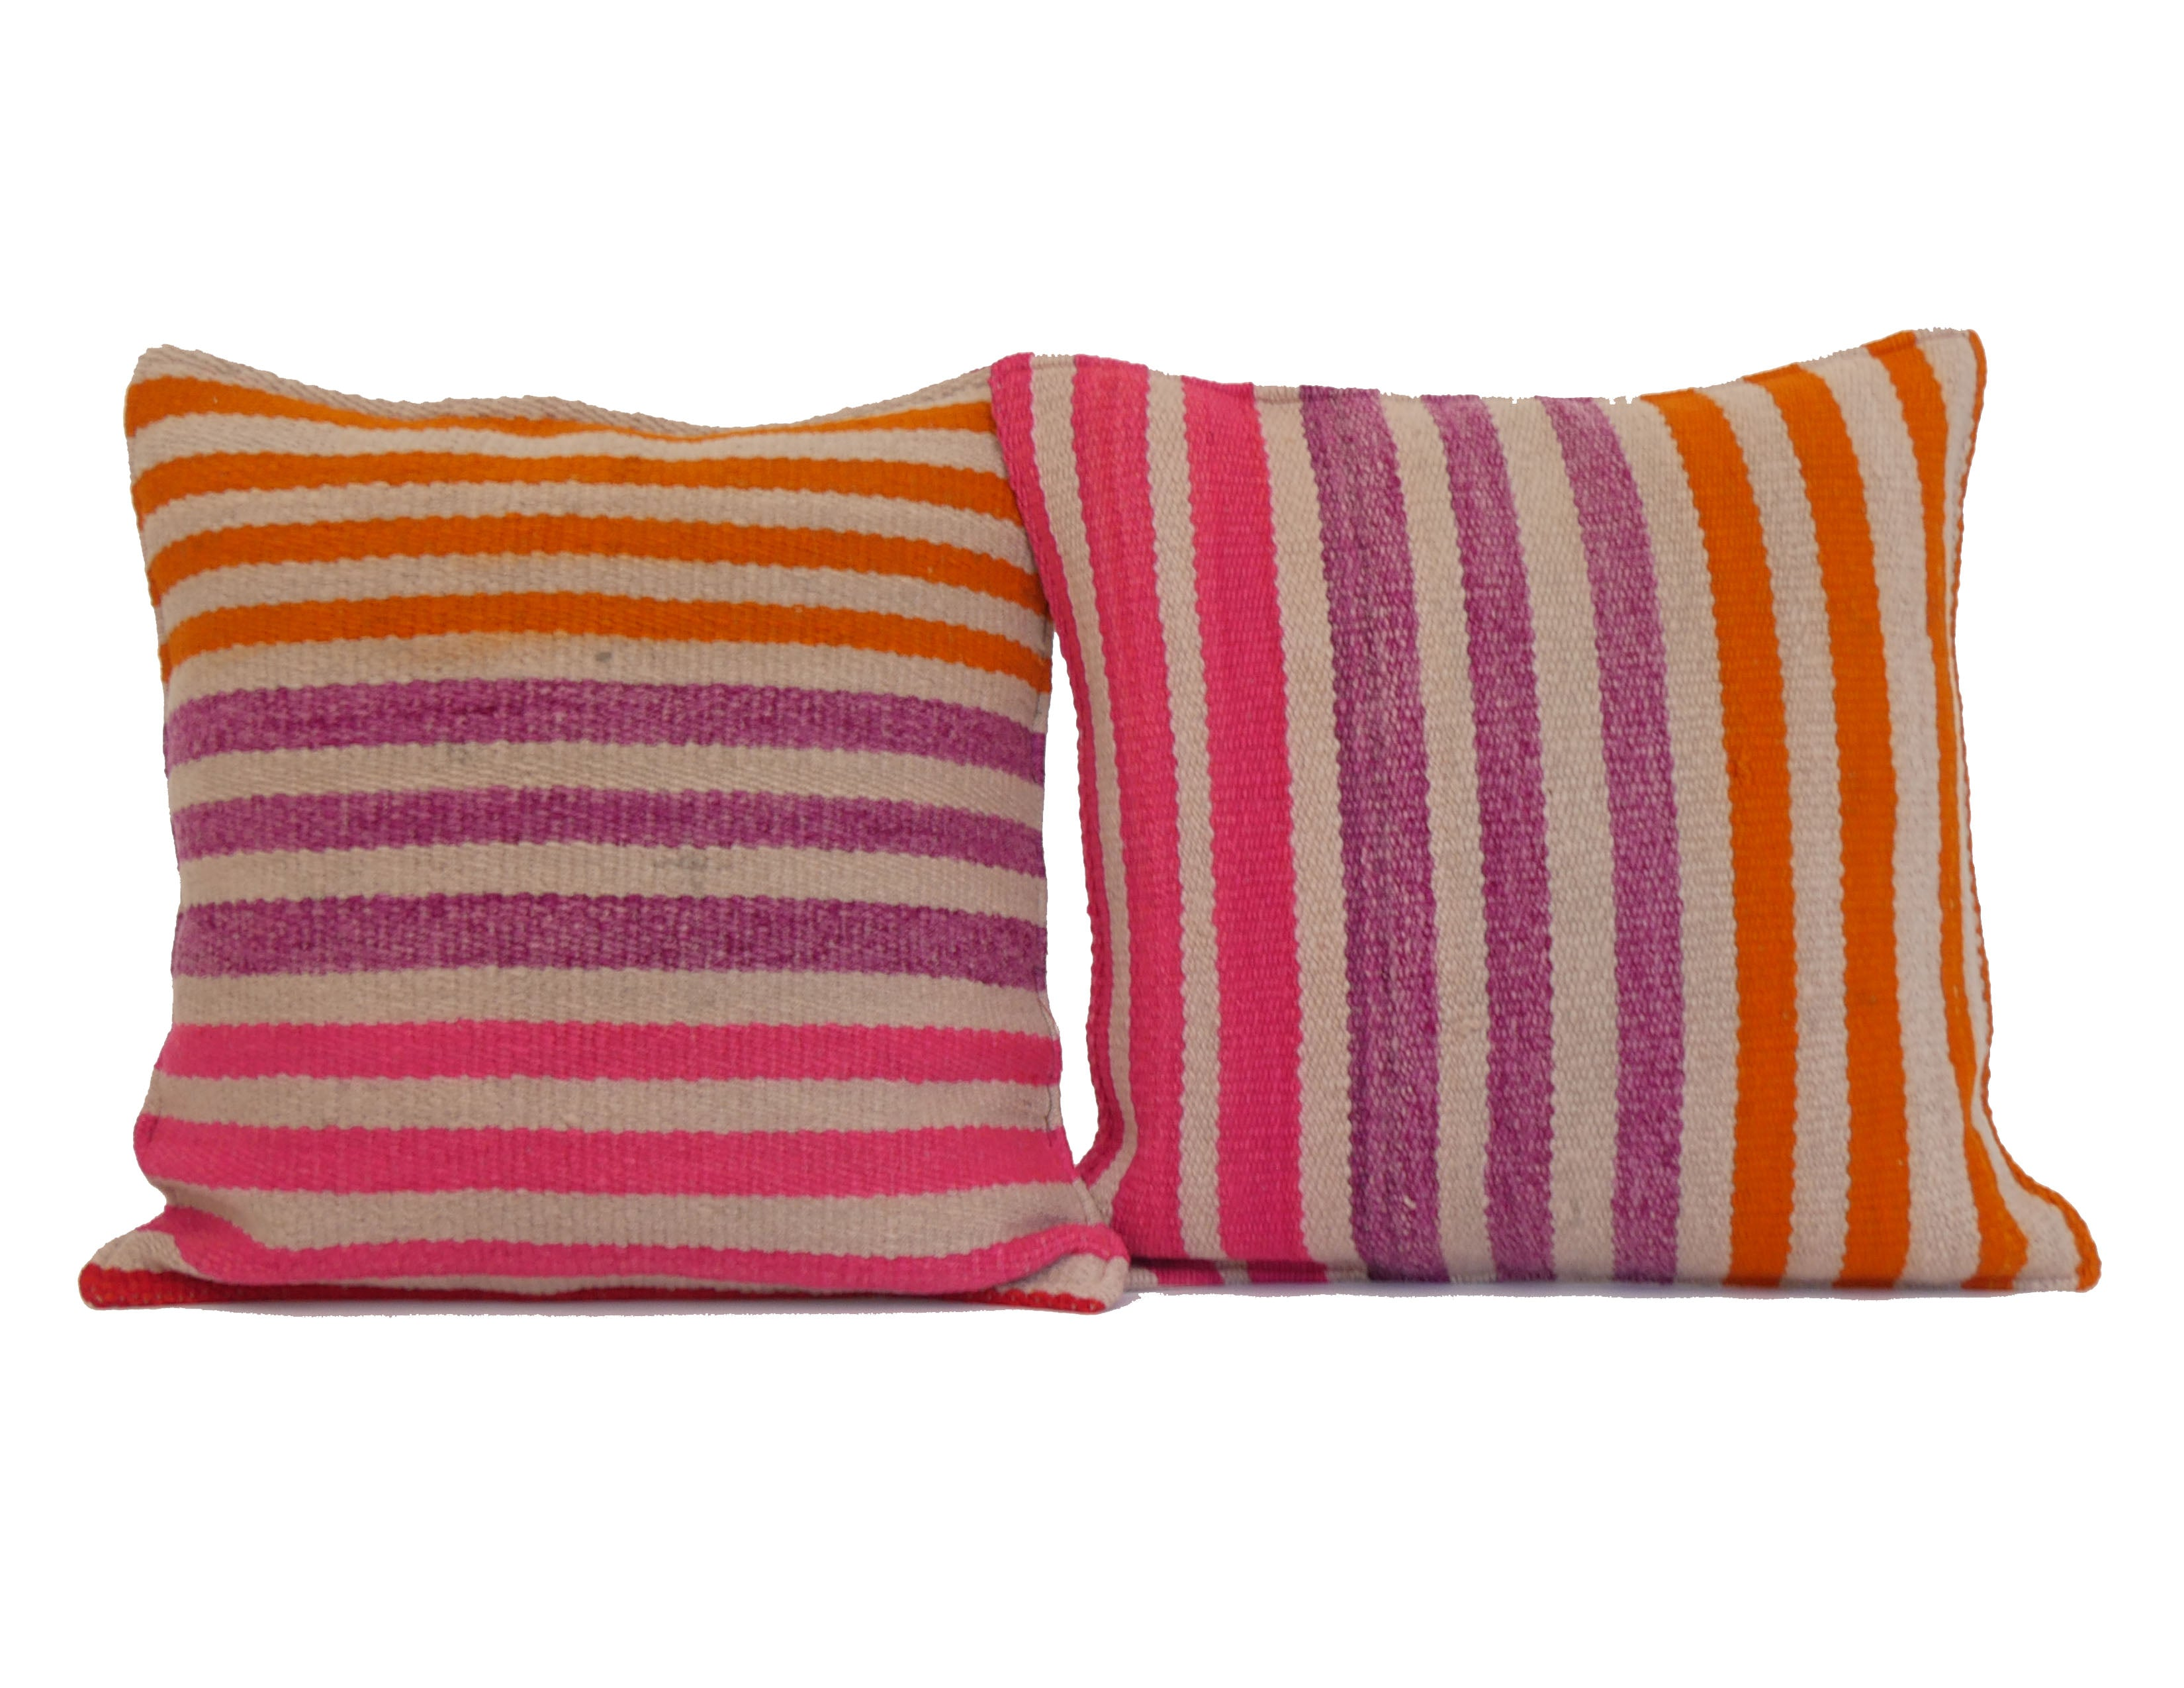 'Strawberry Margarita' Peruvian Frazada Pillow Pair